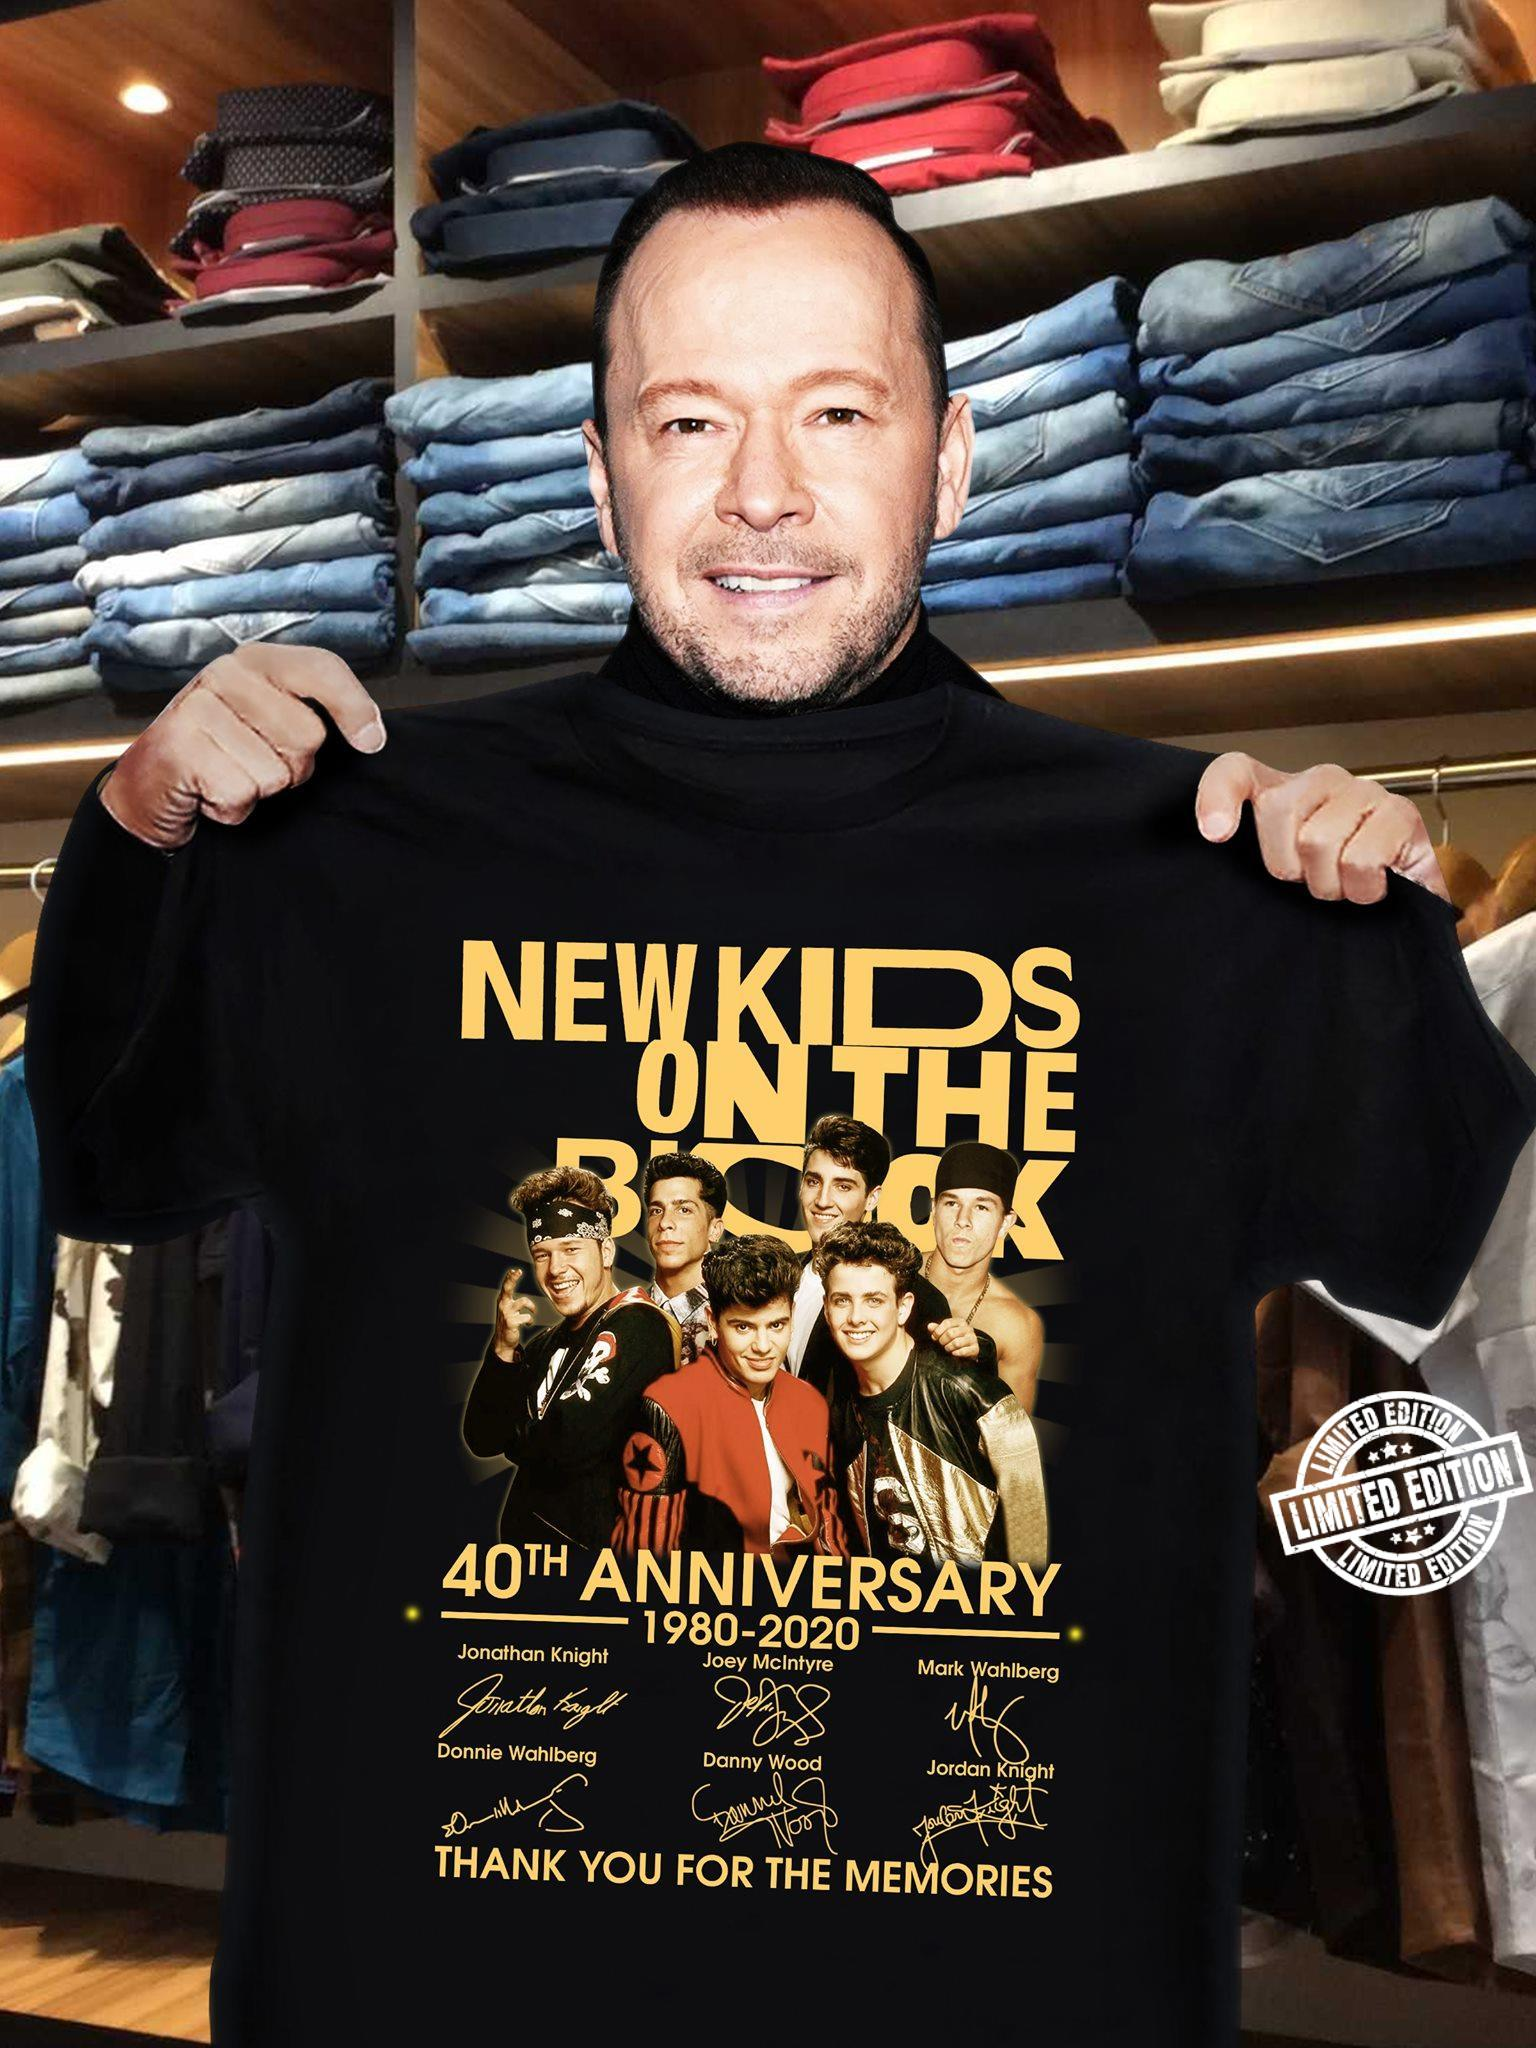 Newkids on the 40th anniversary 1980-2020 thank you the memories shirt